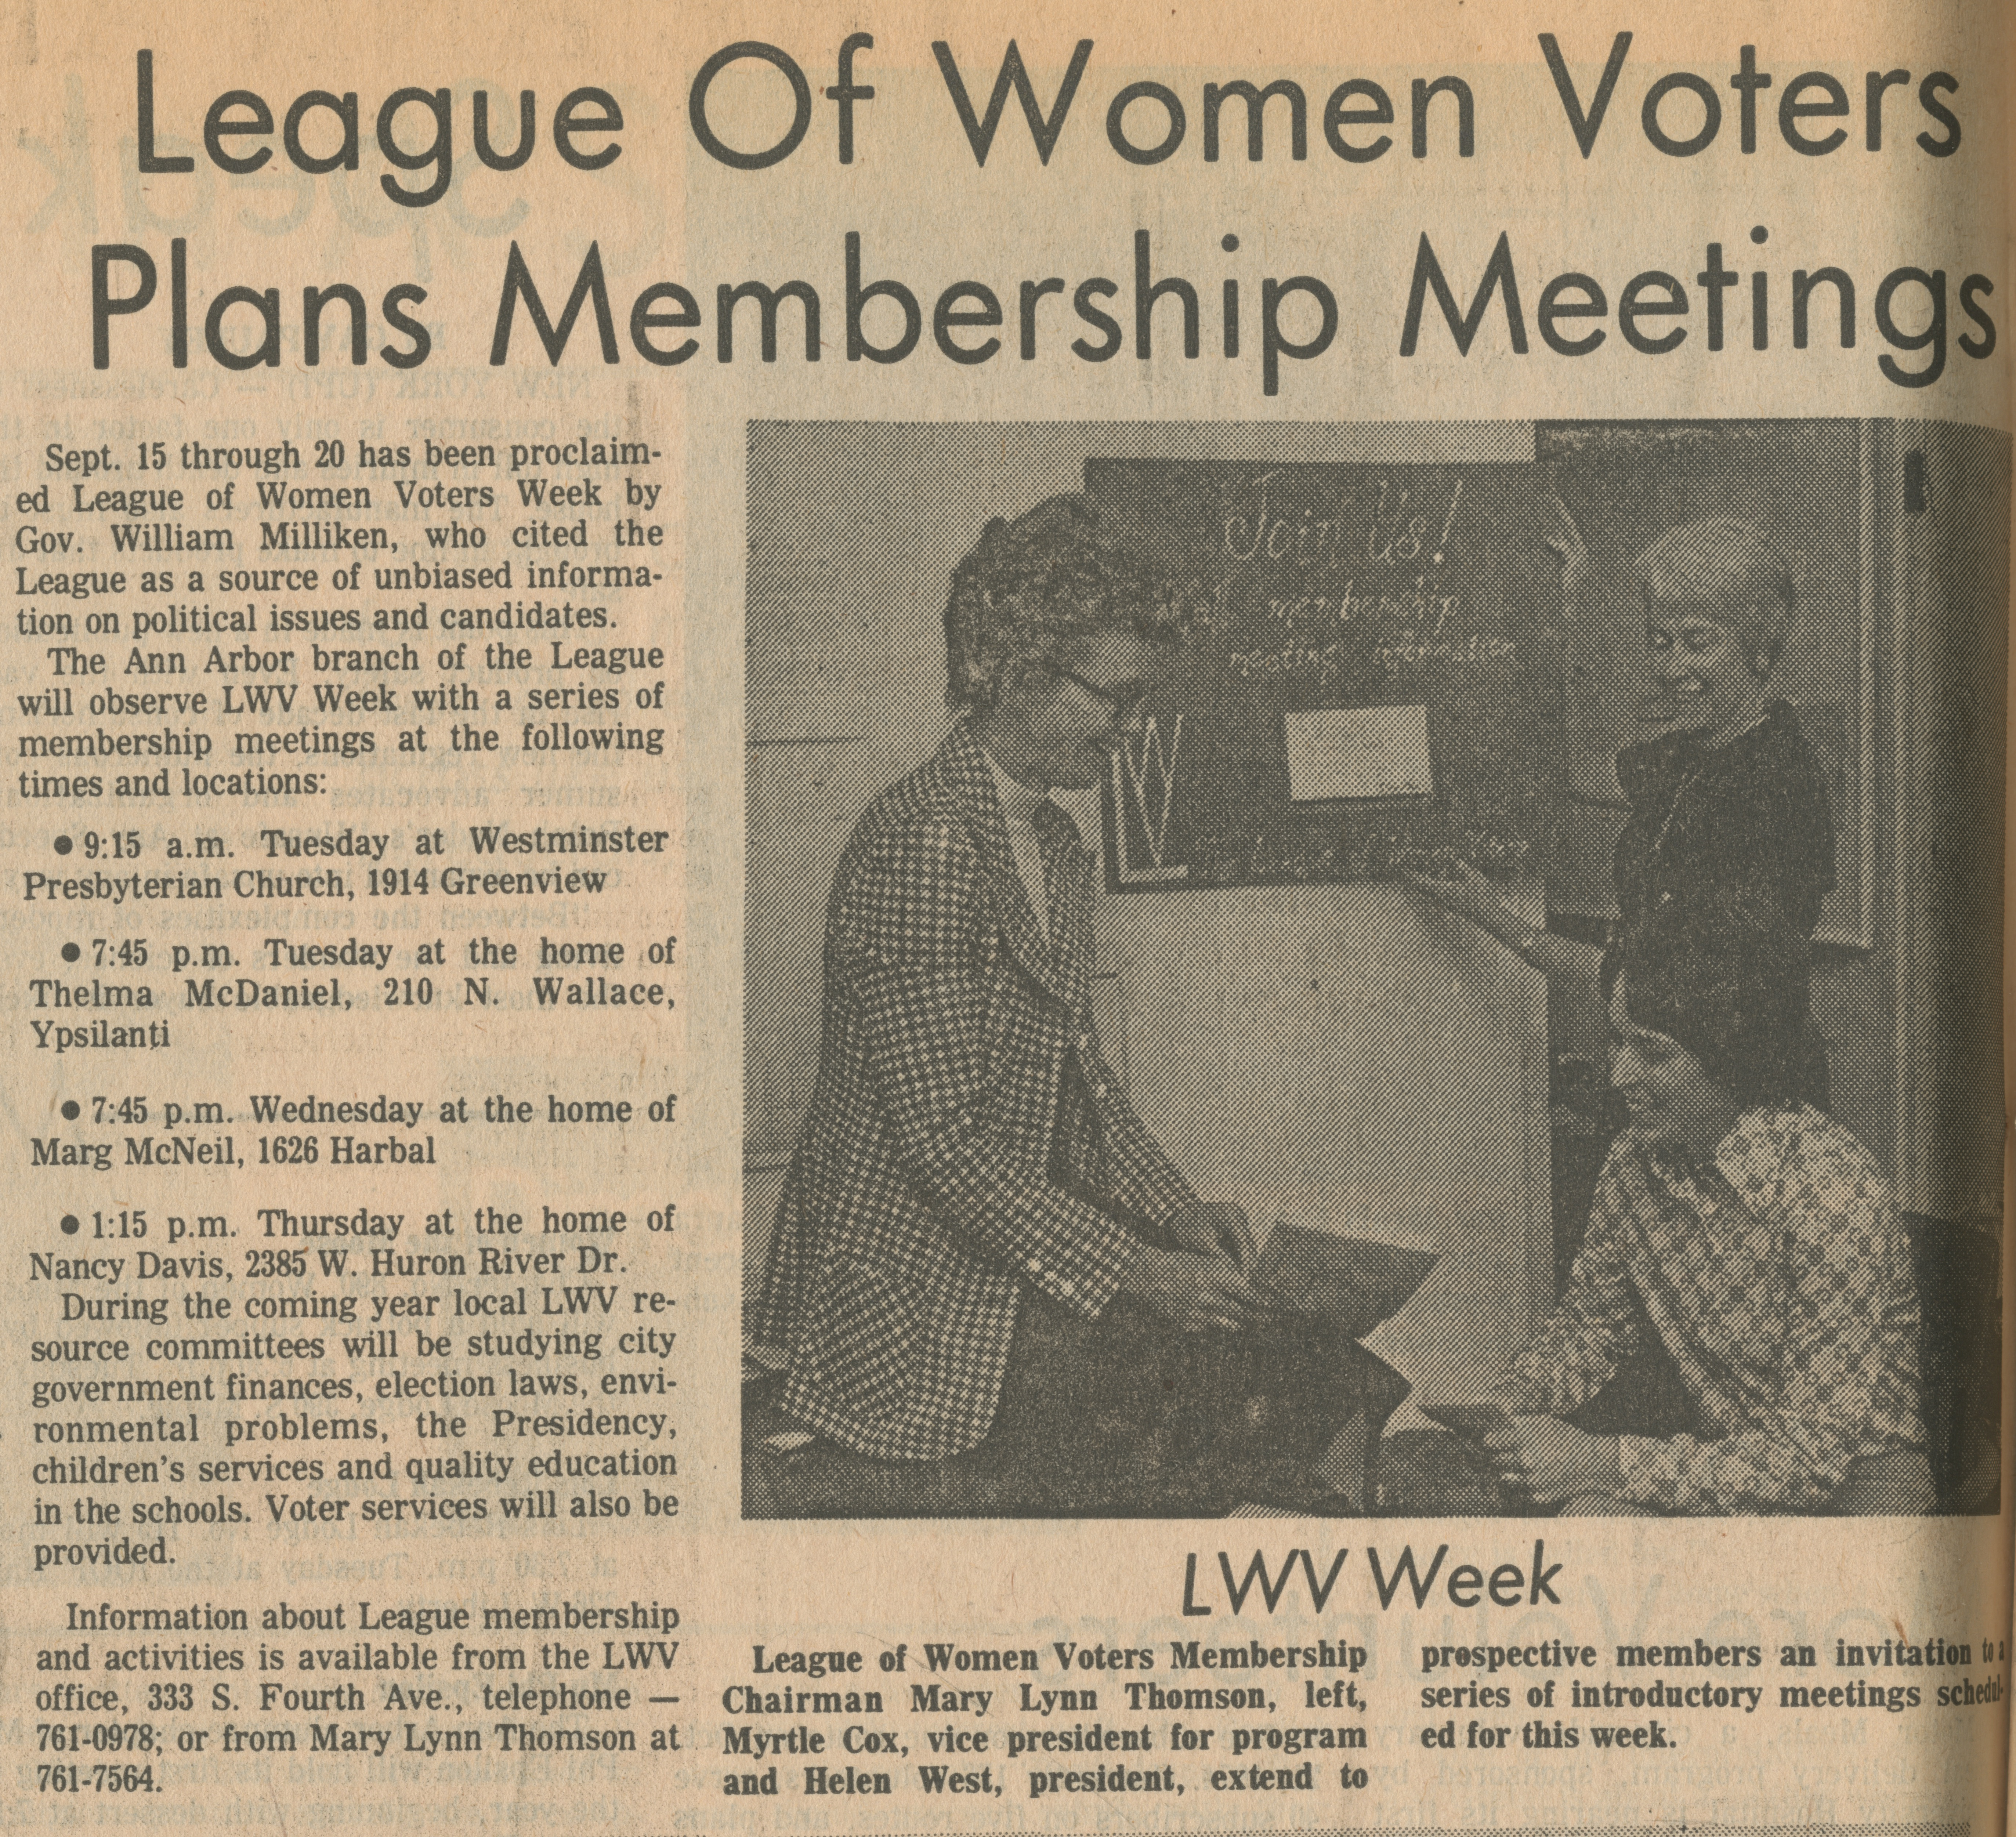 League Of Women Voters Plans Membership Meetings image